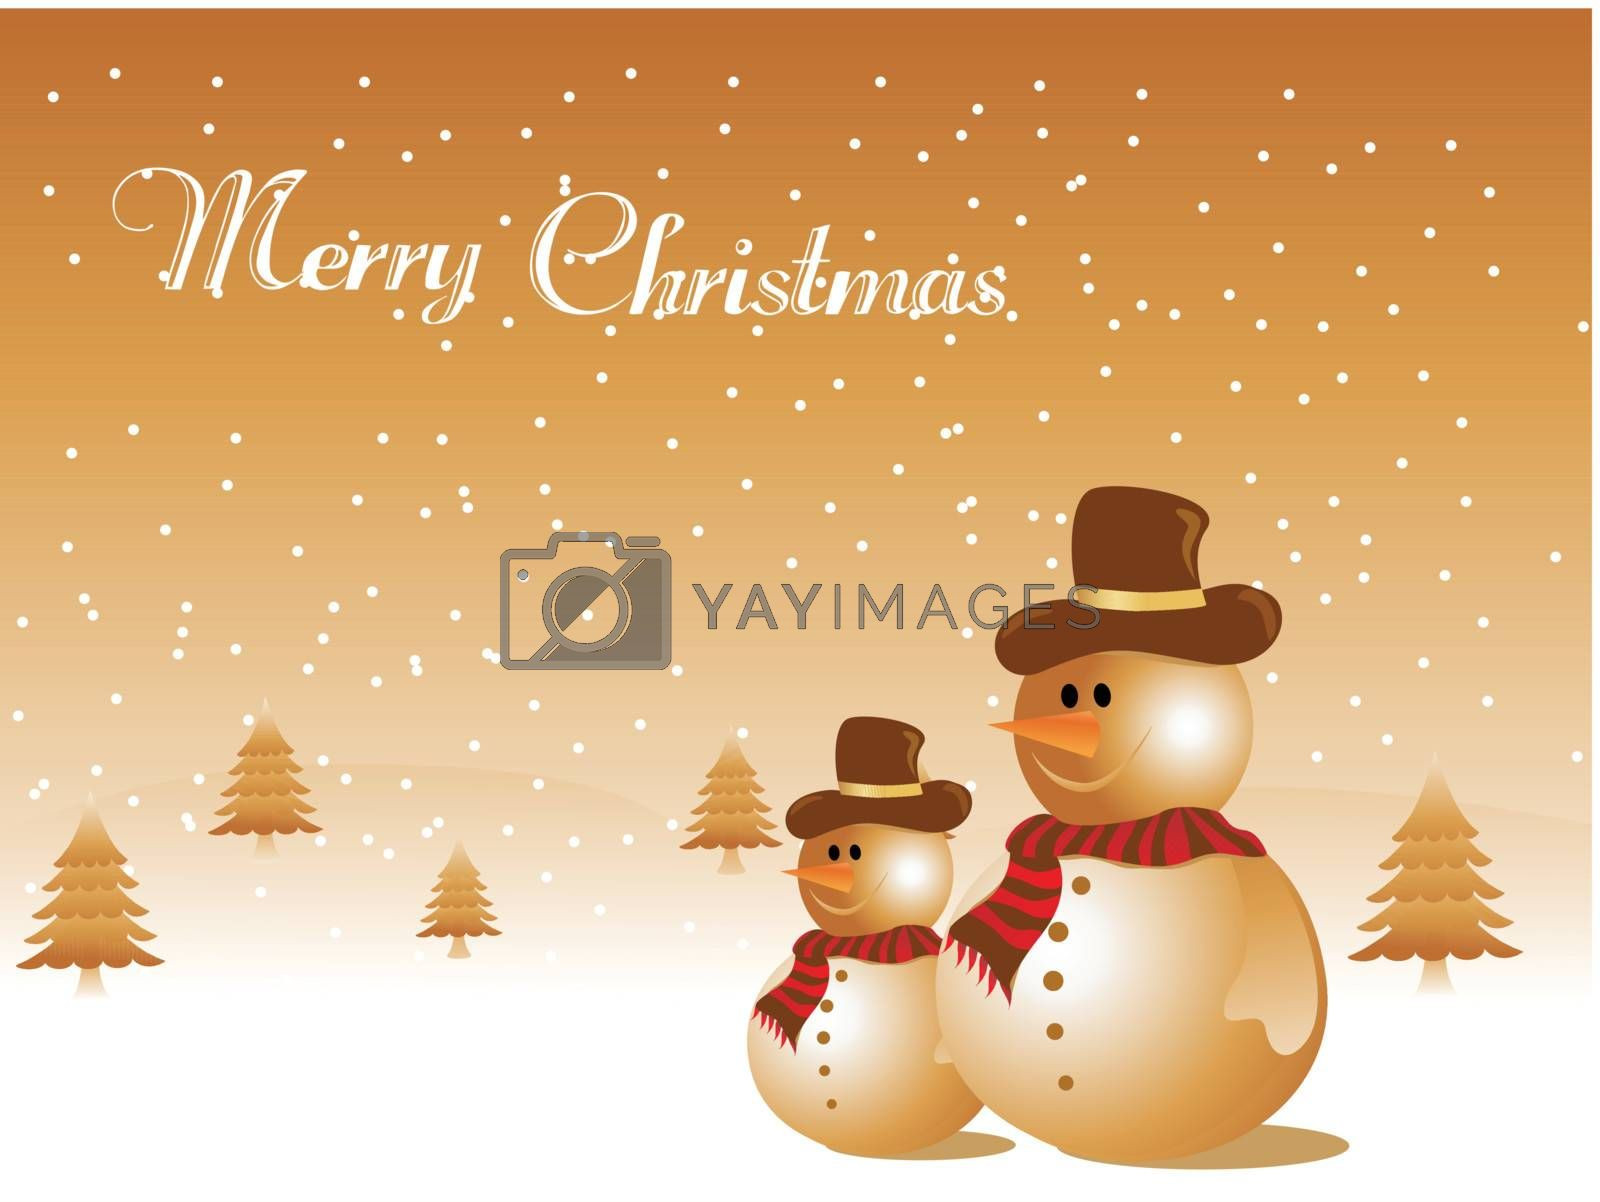 snowman and tree in snowfall, vector illustration